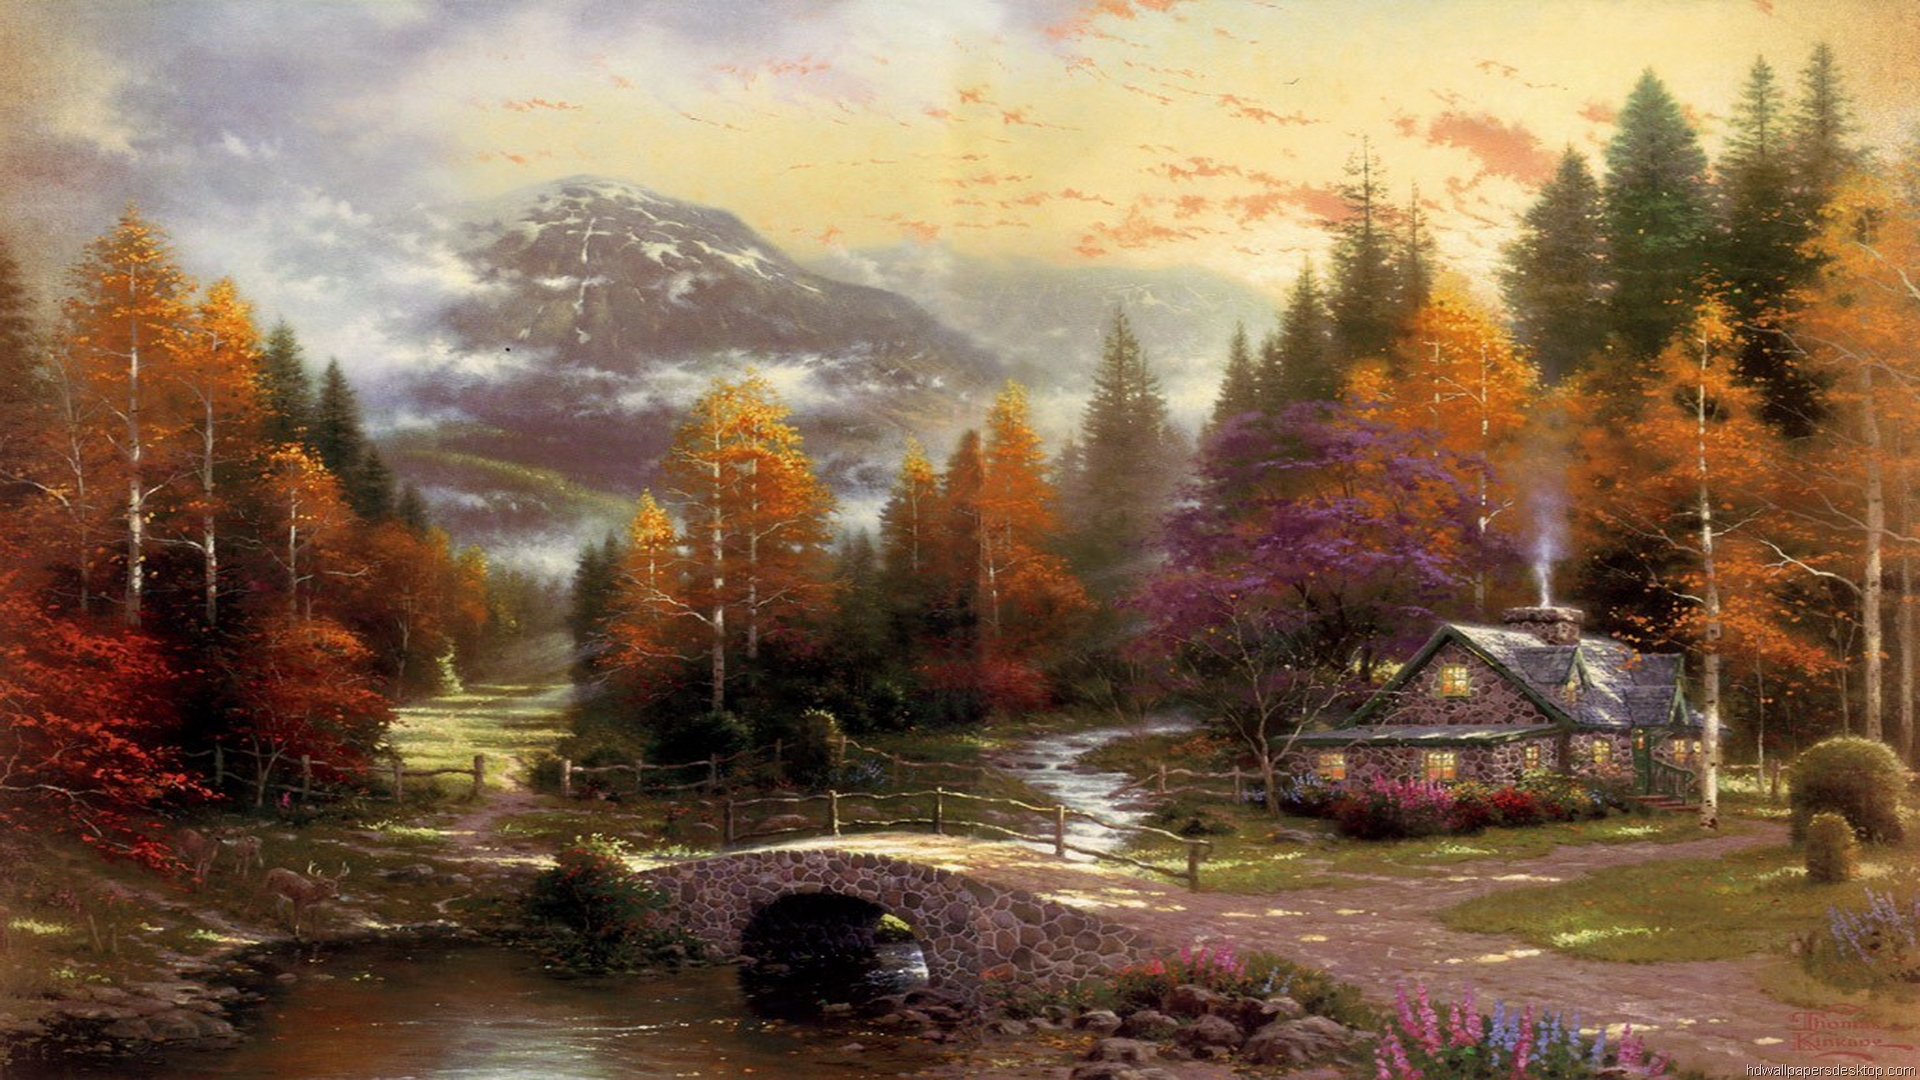 Thomas Kinkade Paintings Thomas Kinkade Wallpaper And Screensavers 1920x1080